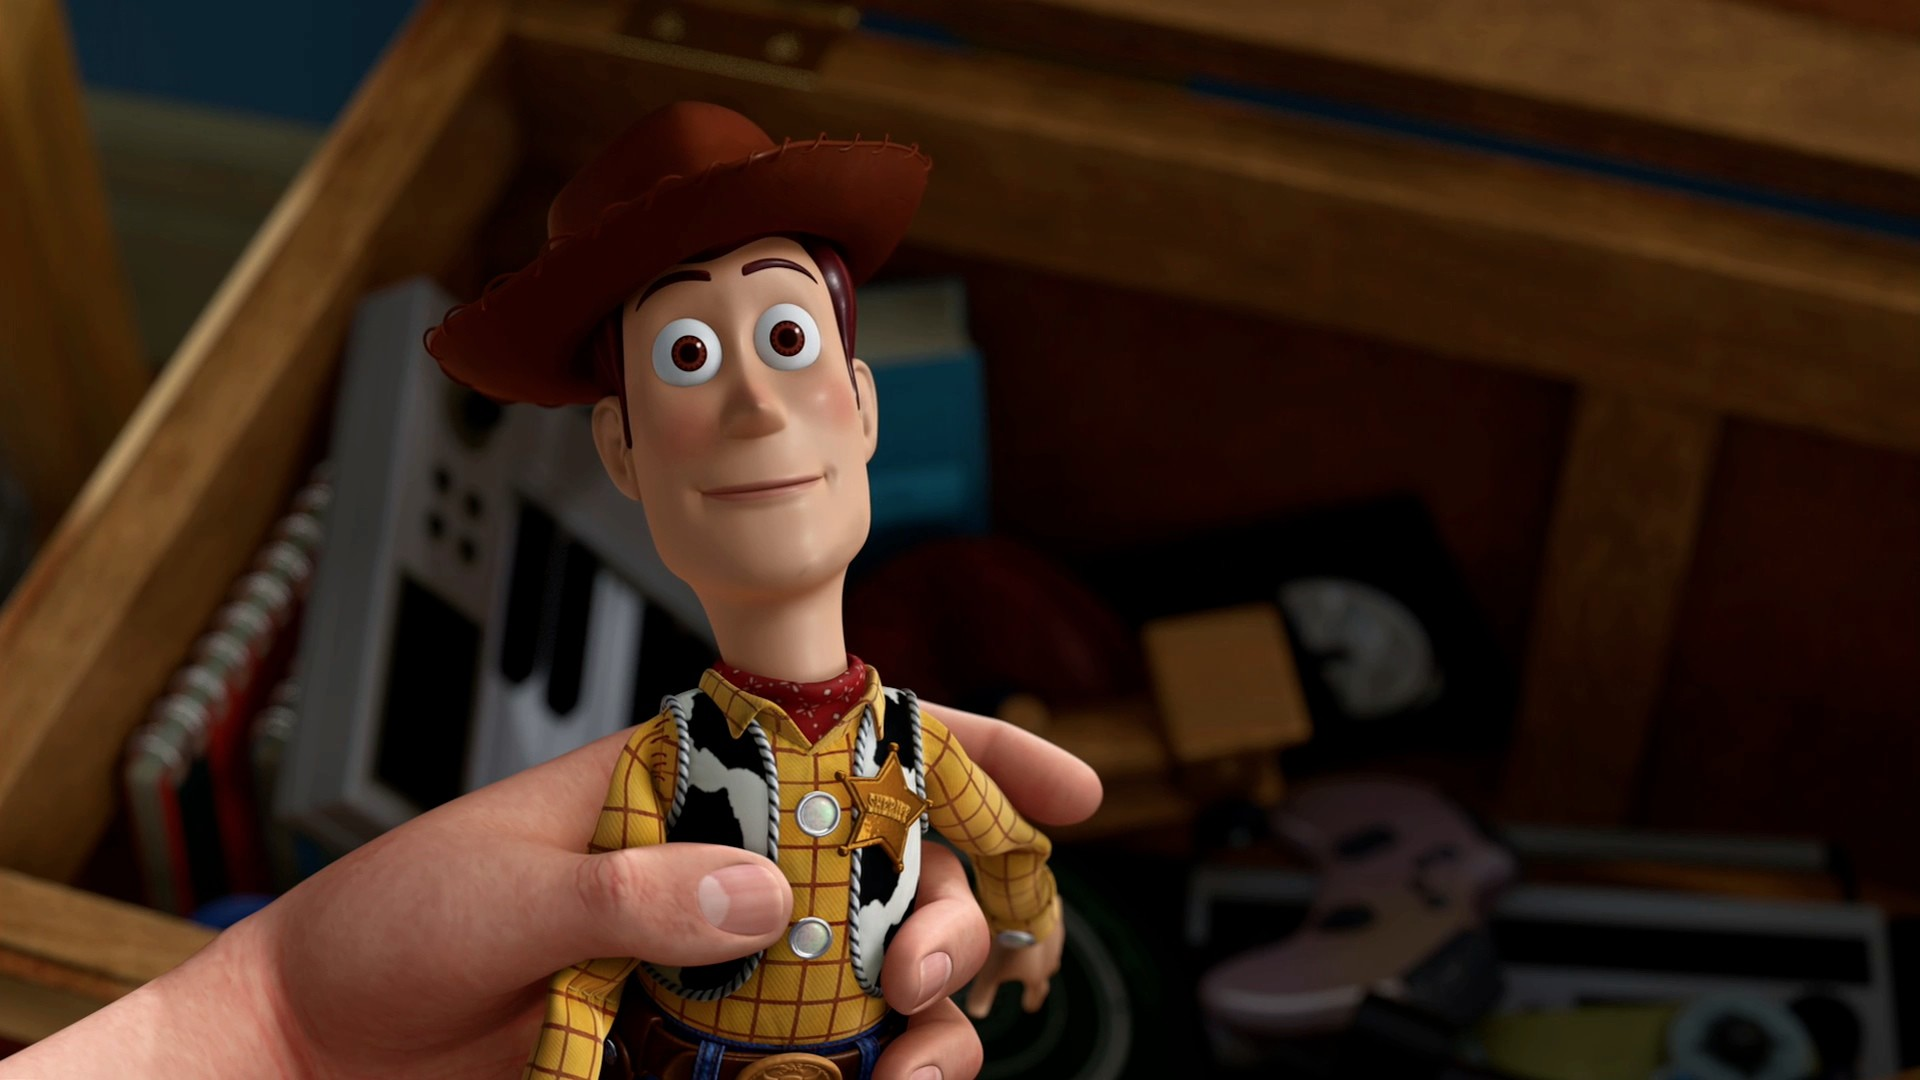 Woody Wallpaper 57 Images